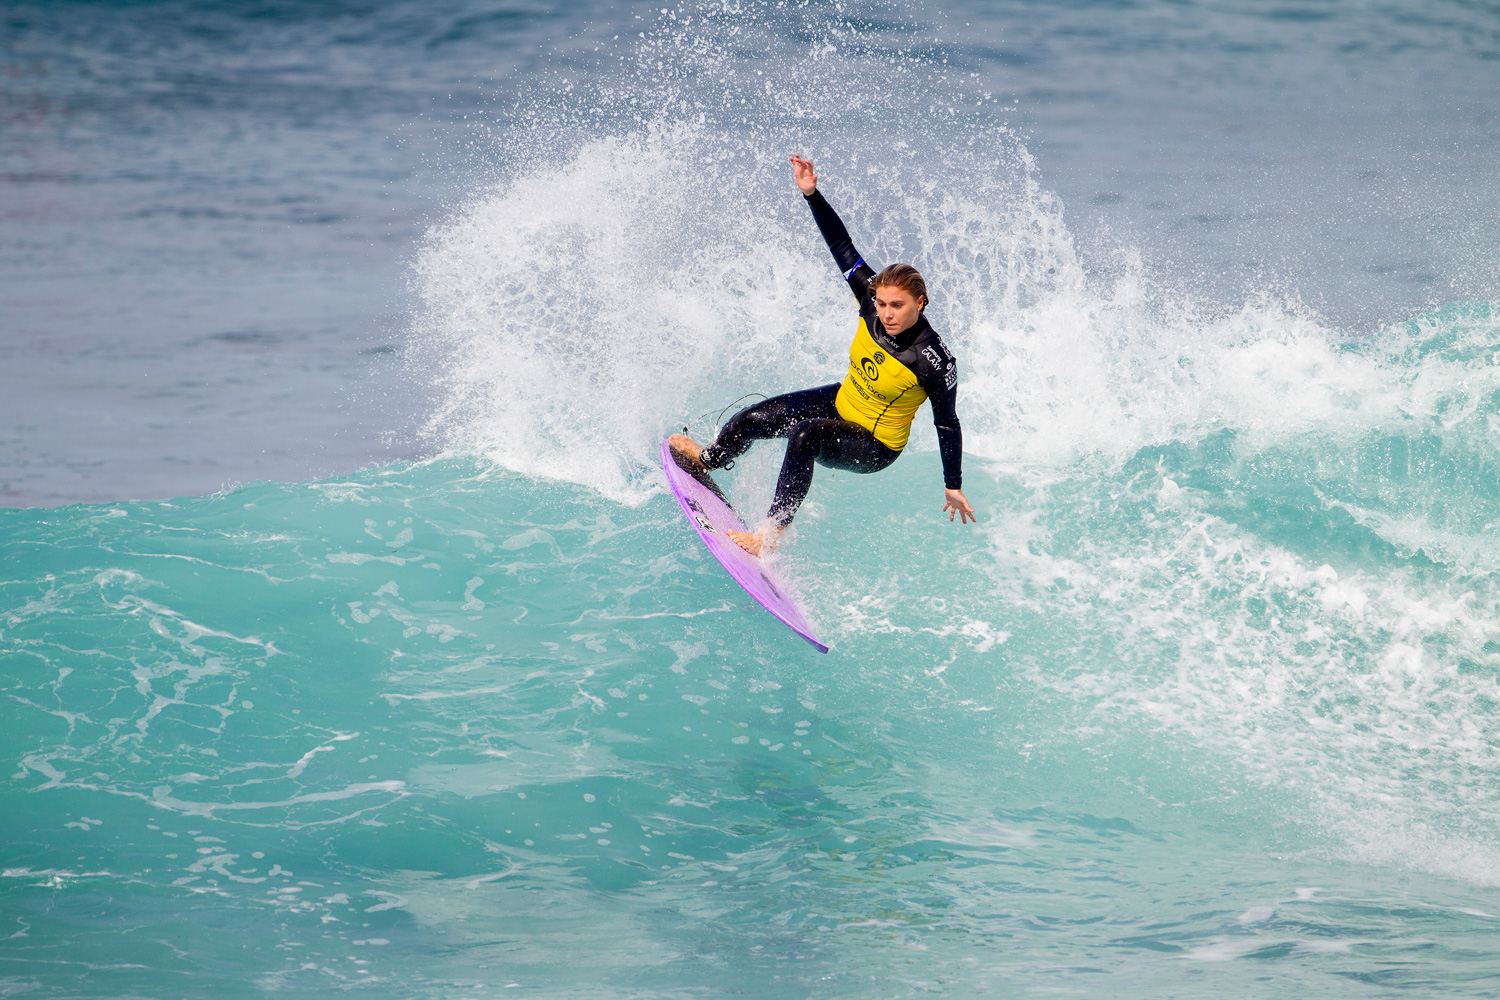 Dimity Stoyle surfs to victory during Round 1 of the Rip Curl Pro Bells Beach with an impressive performance.